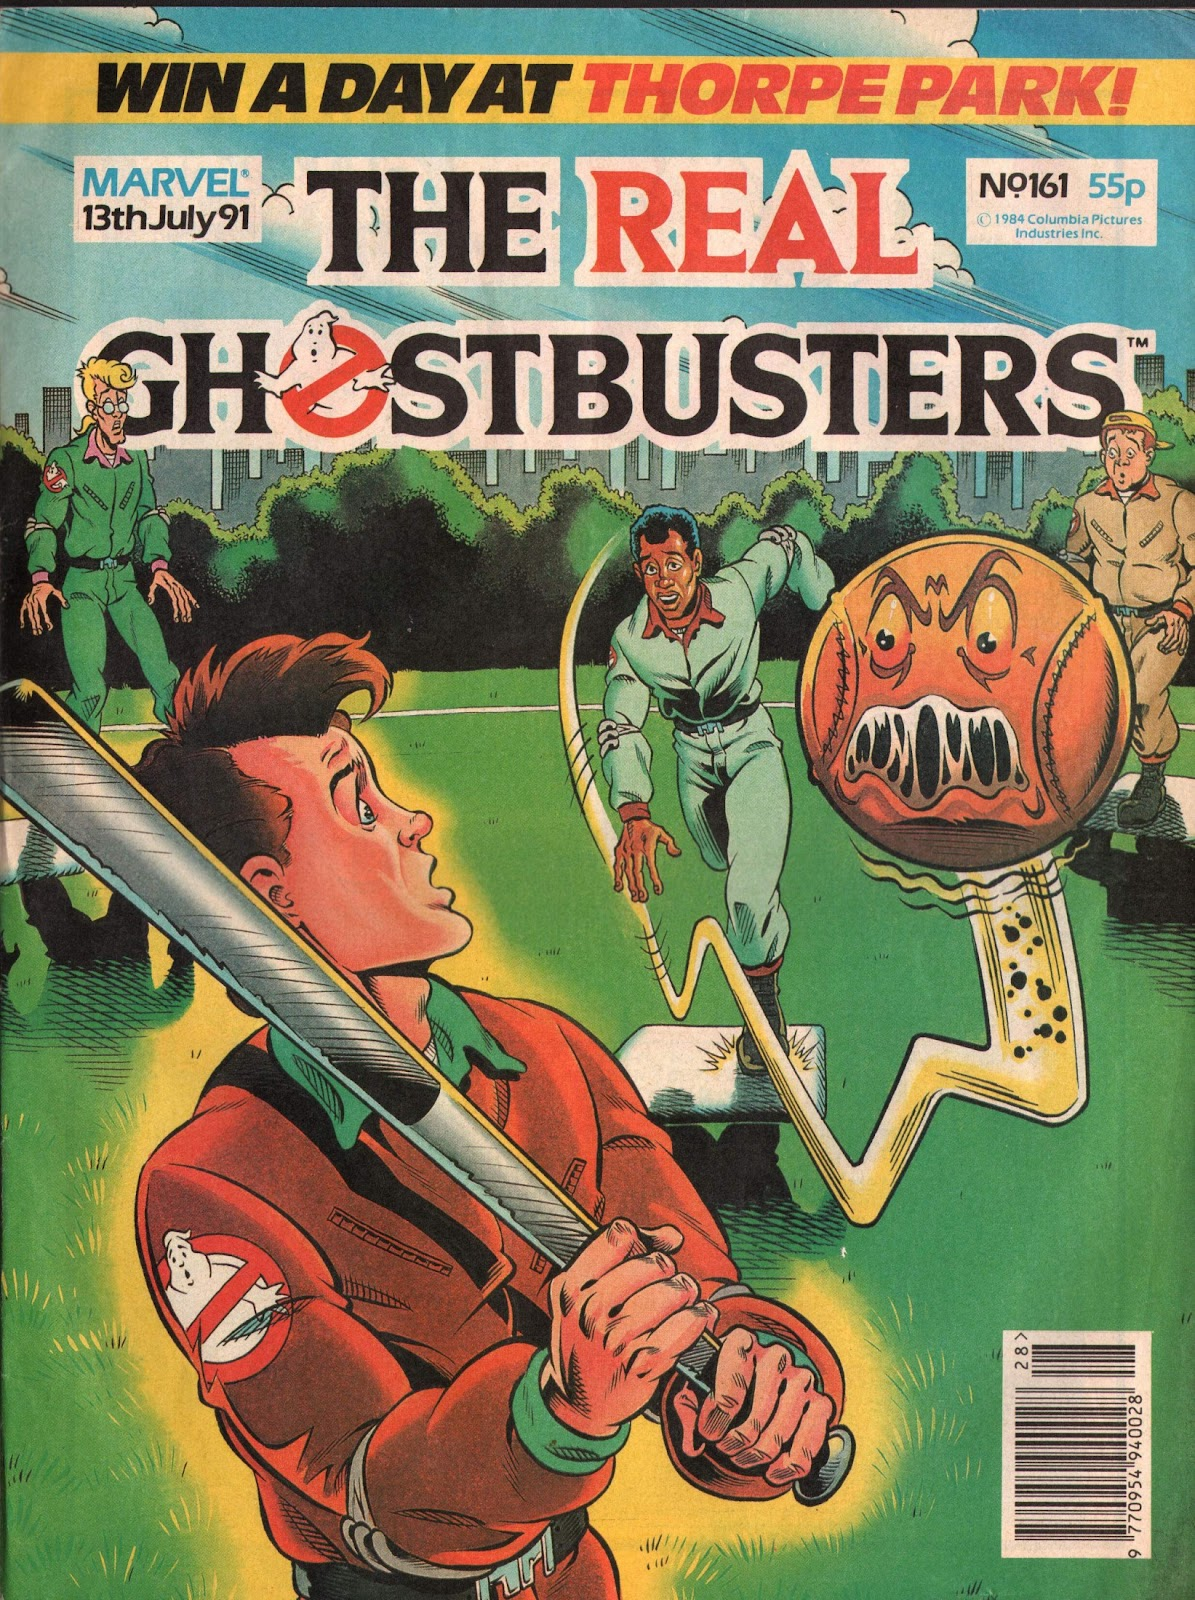 The Real Ghostbusters 161 Page 1